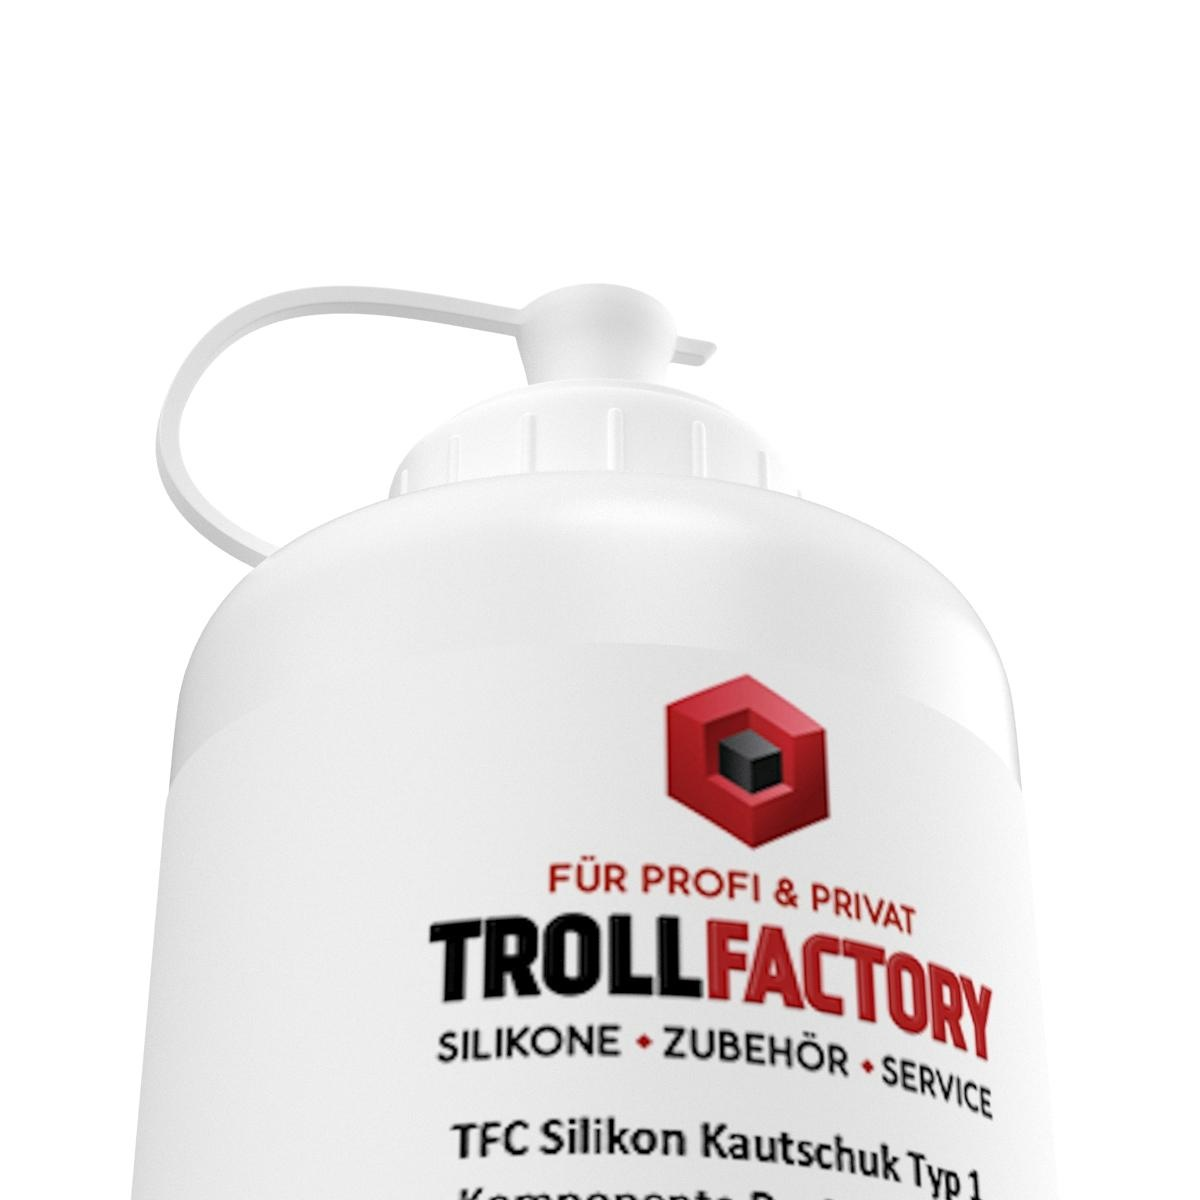 Troll Factory TFC Troll Factory Silicone Rubber Type 1 Afvorm silicone zacht 1000g